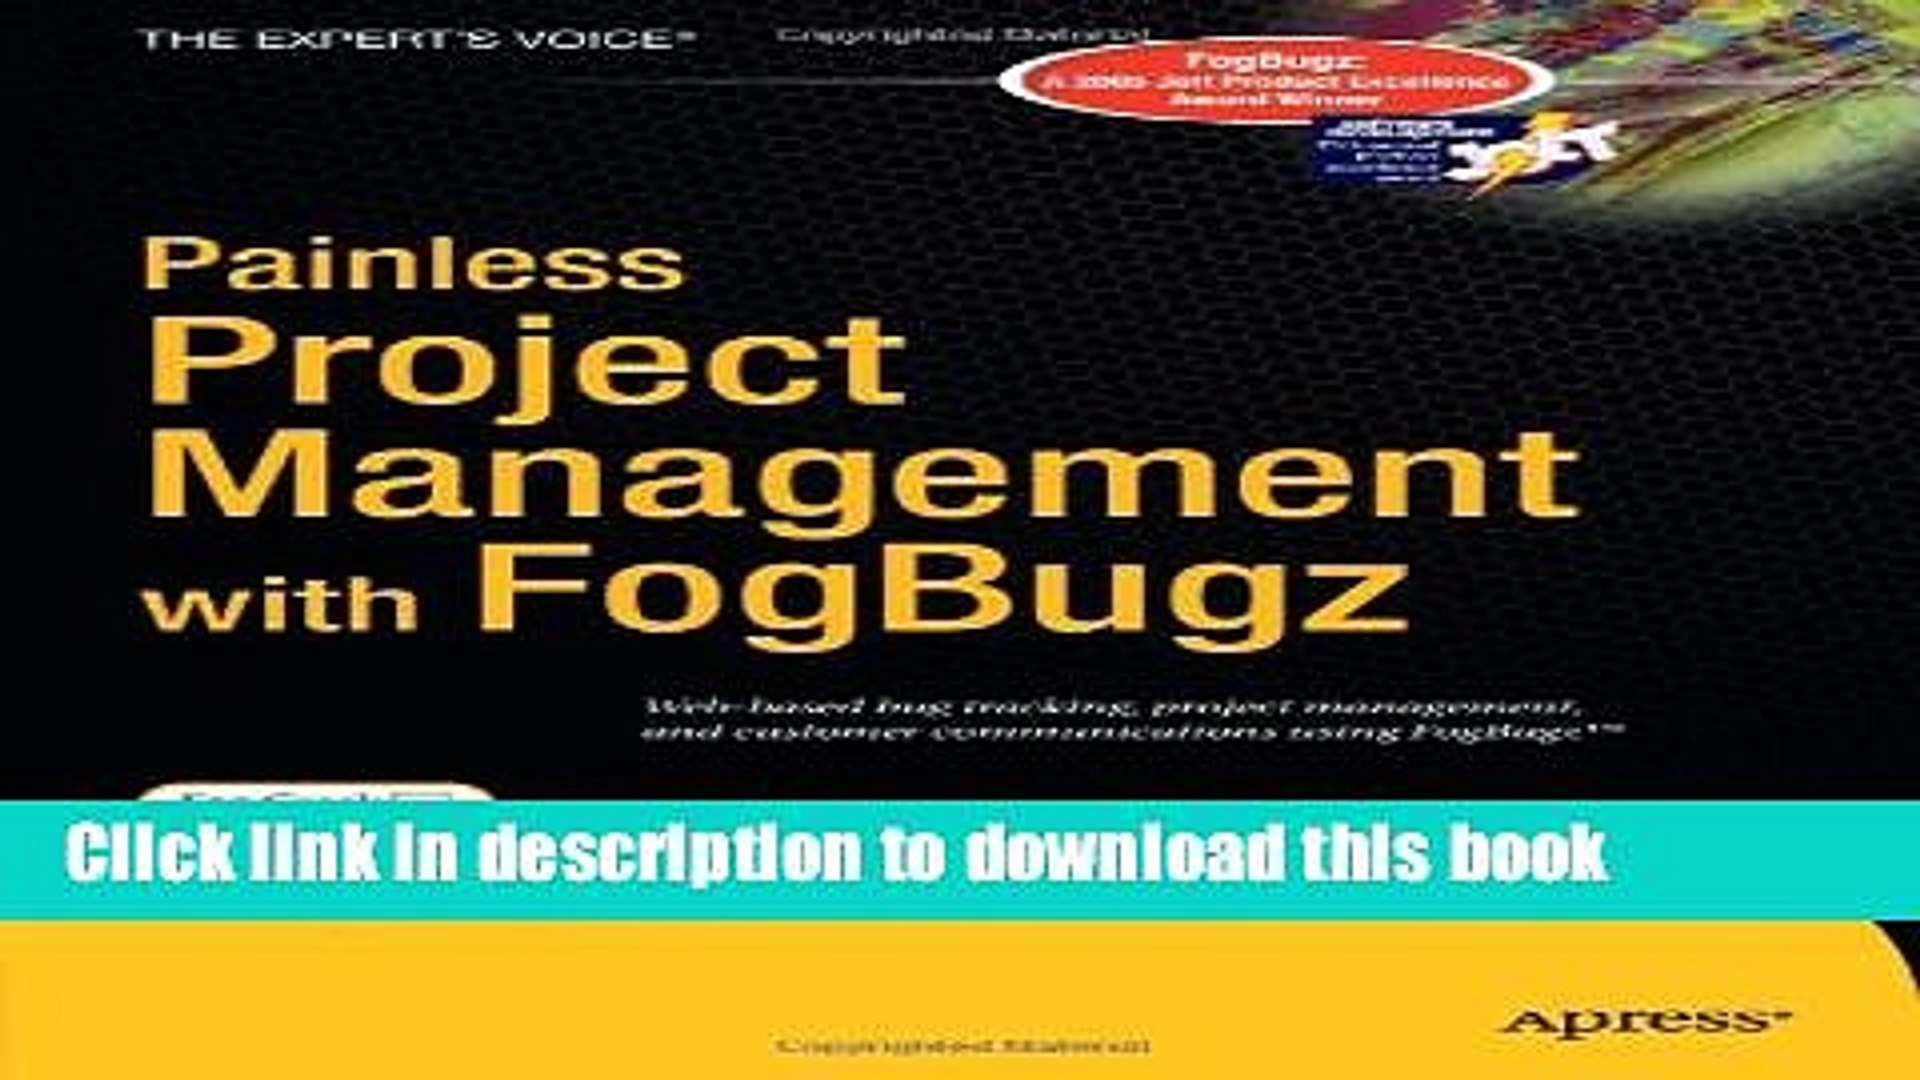 Fogbugz Free books painless project management with fogbugz full online